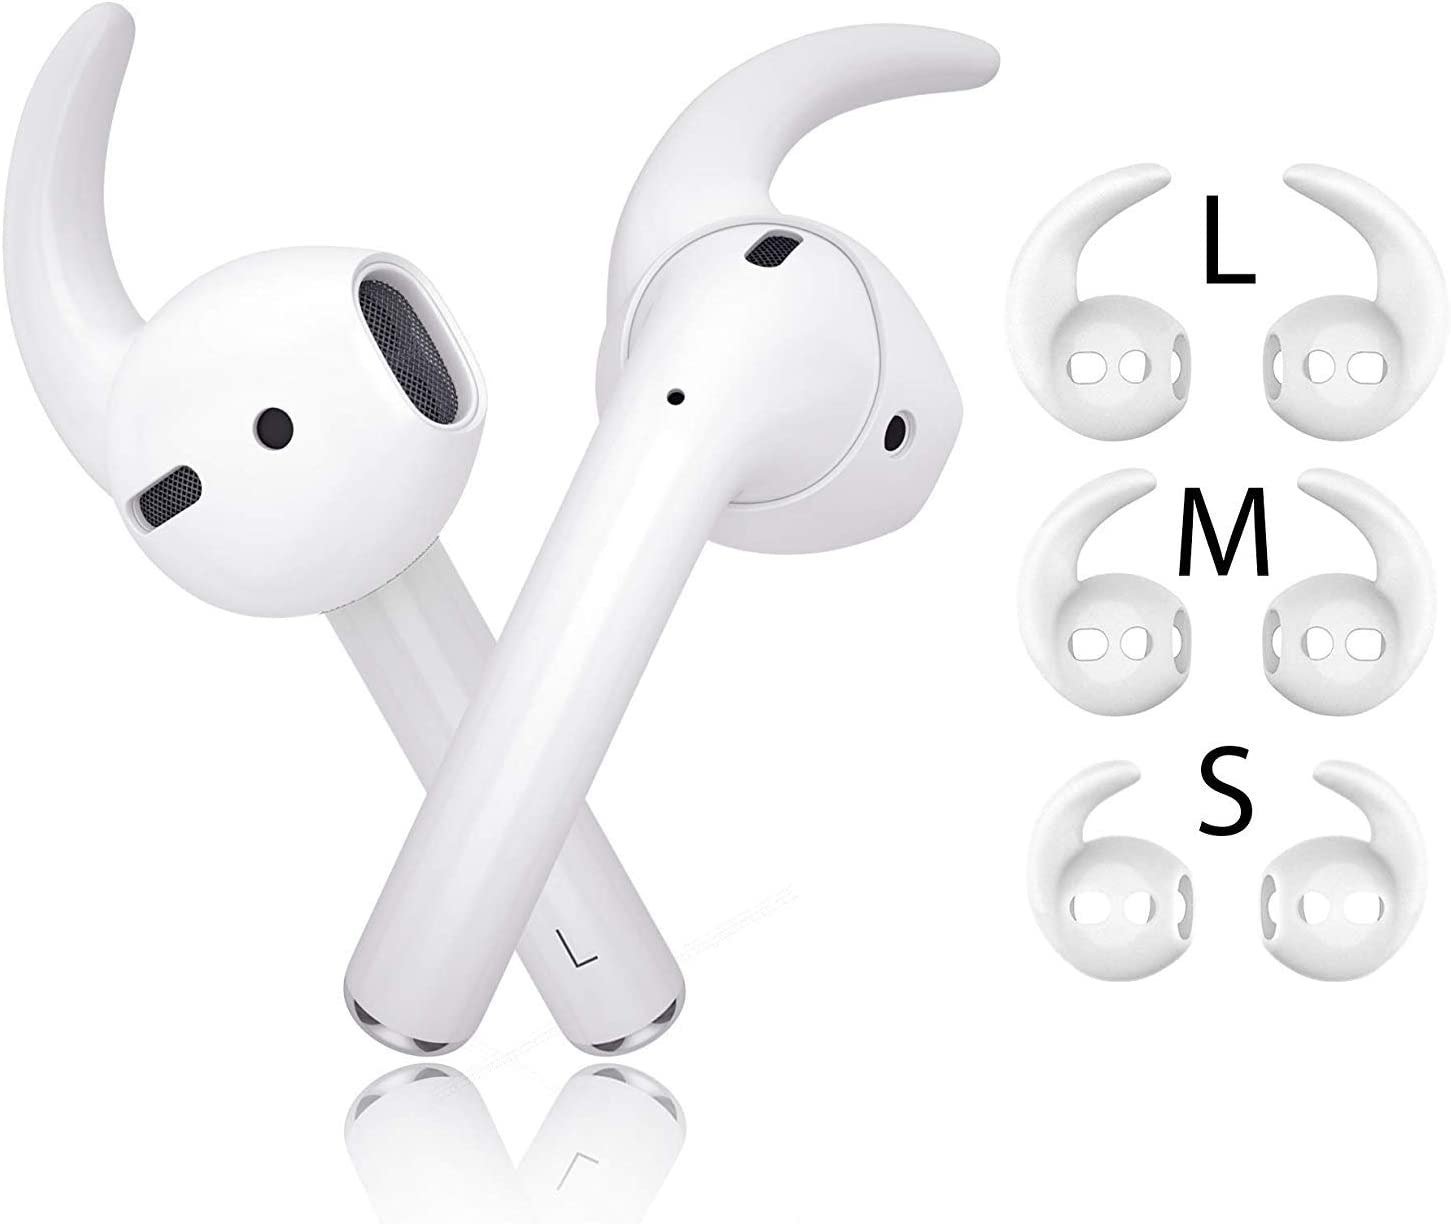 innoGadgets Ear Hooks Compatible with Apple AirPods 1/2 | EarPods Accessories - Silicone Ear Cover Tip Grip | 3 Pairs - Small, Medium & Large – Anti-Slip | White